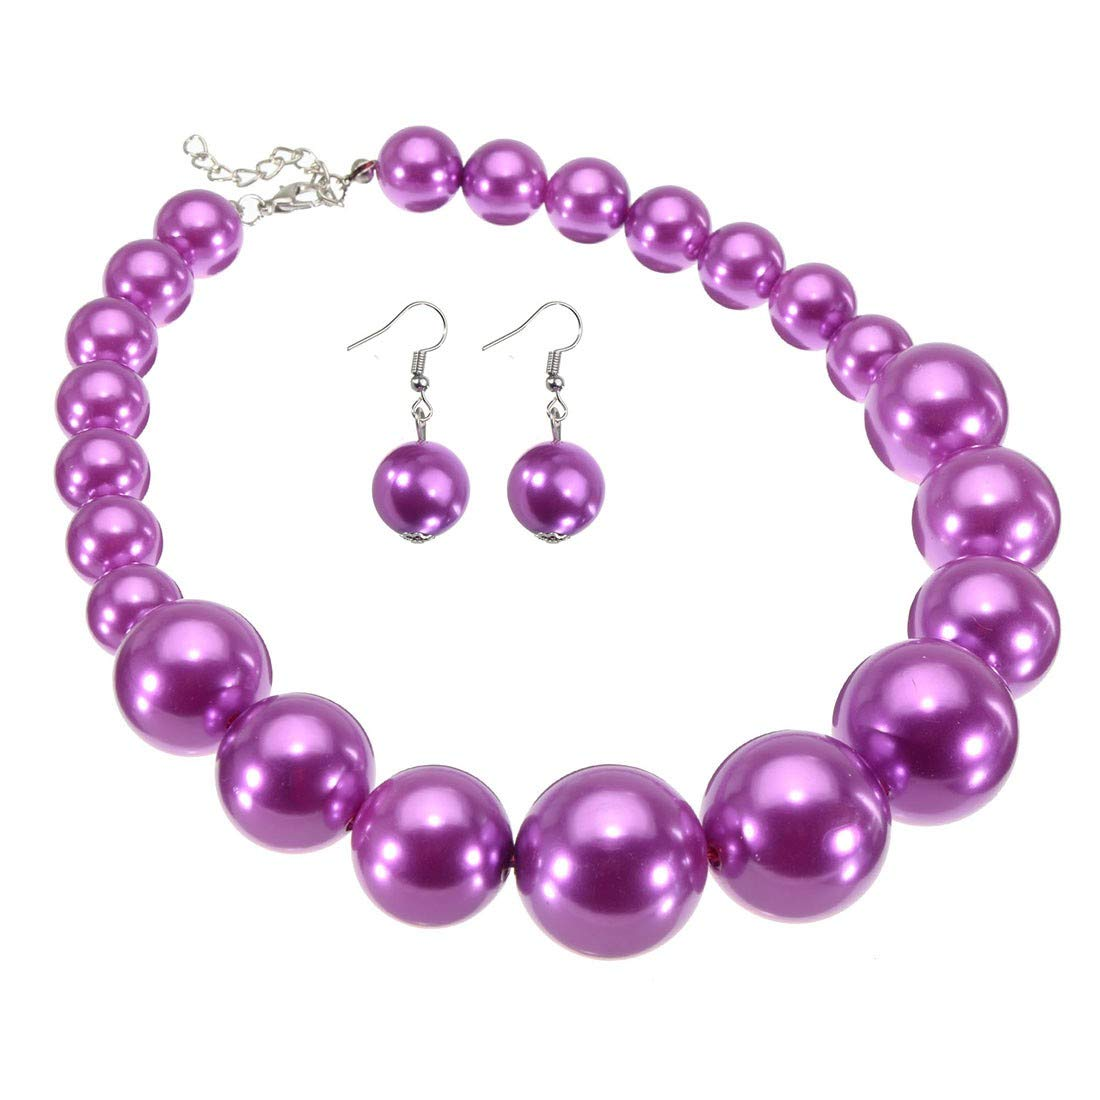 Jerollin Women Ladies Vintage Resin Pendant Pearl Necklace Chain Collar Choker Fashion Bib Necklace and Earring Jewelry Set